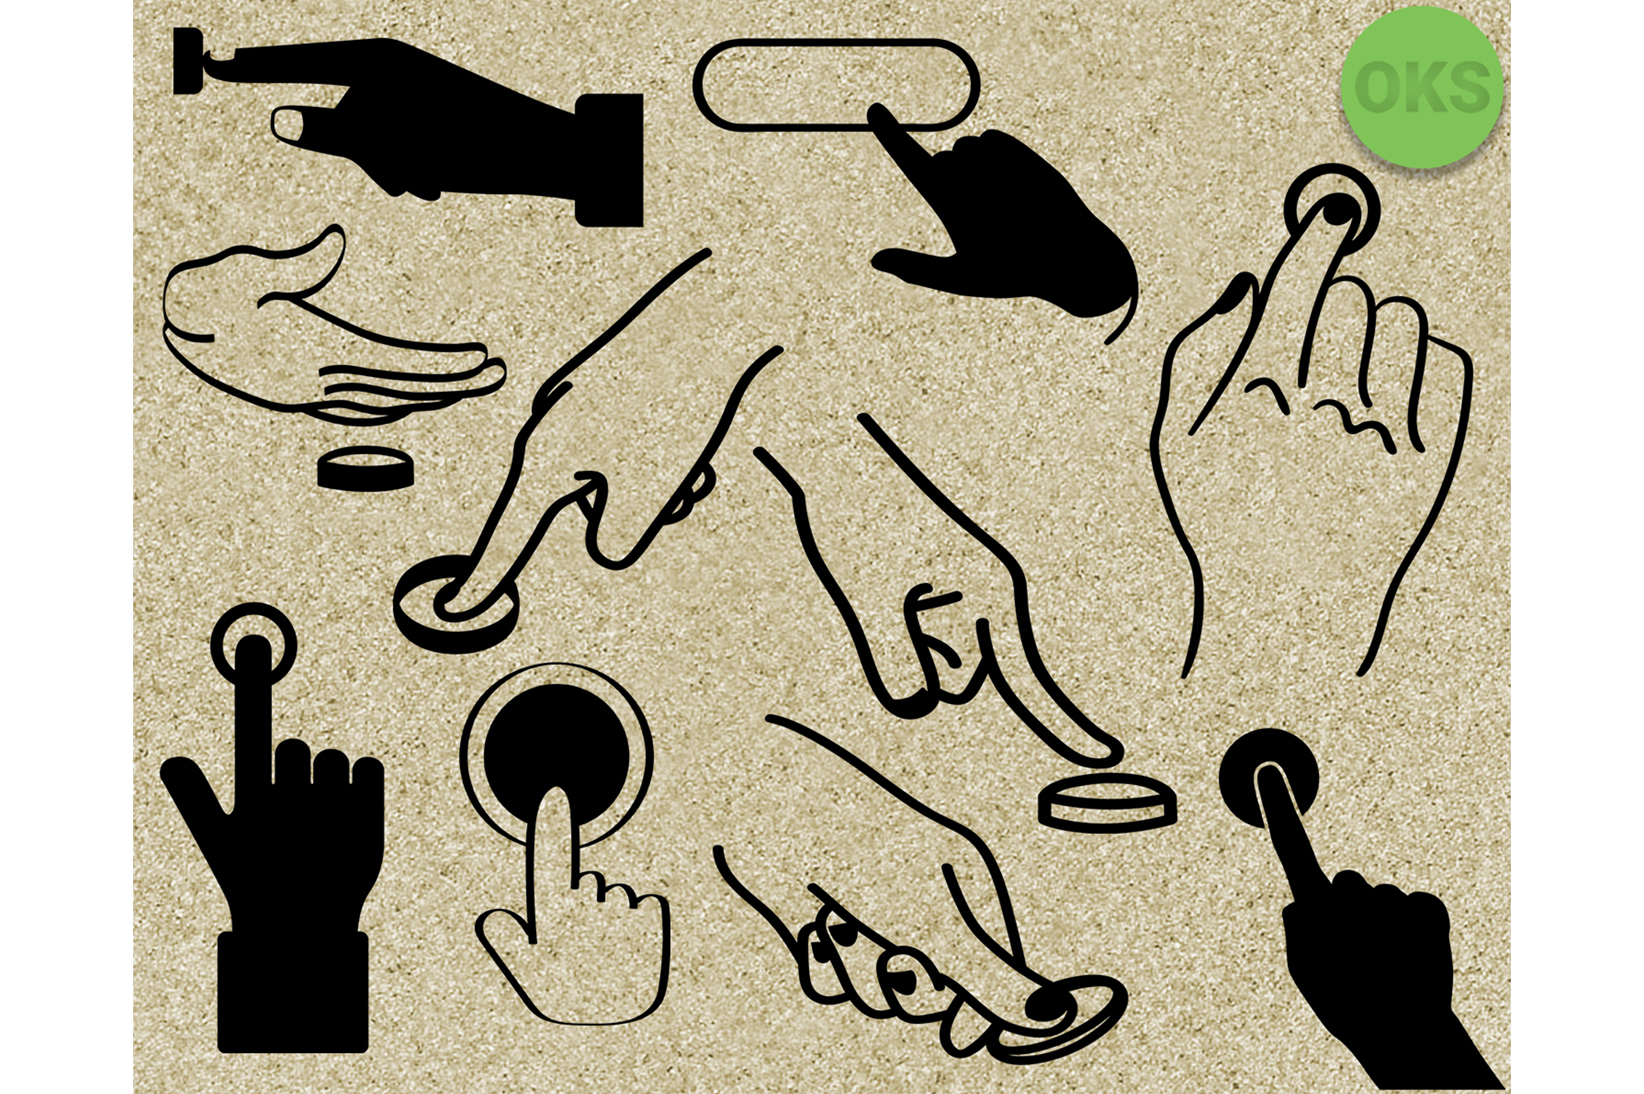 Download Free Finger Pushing A Button Svg Push Vector Graphic By Crafteroks for Cricut Explore, Silhouette and other cutting machines.